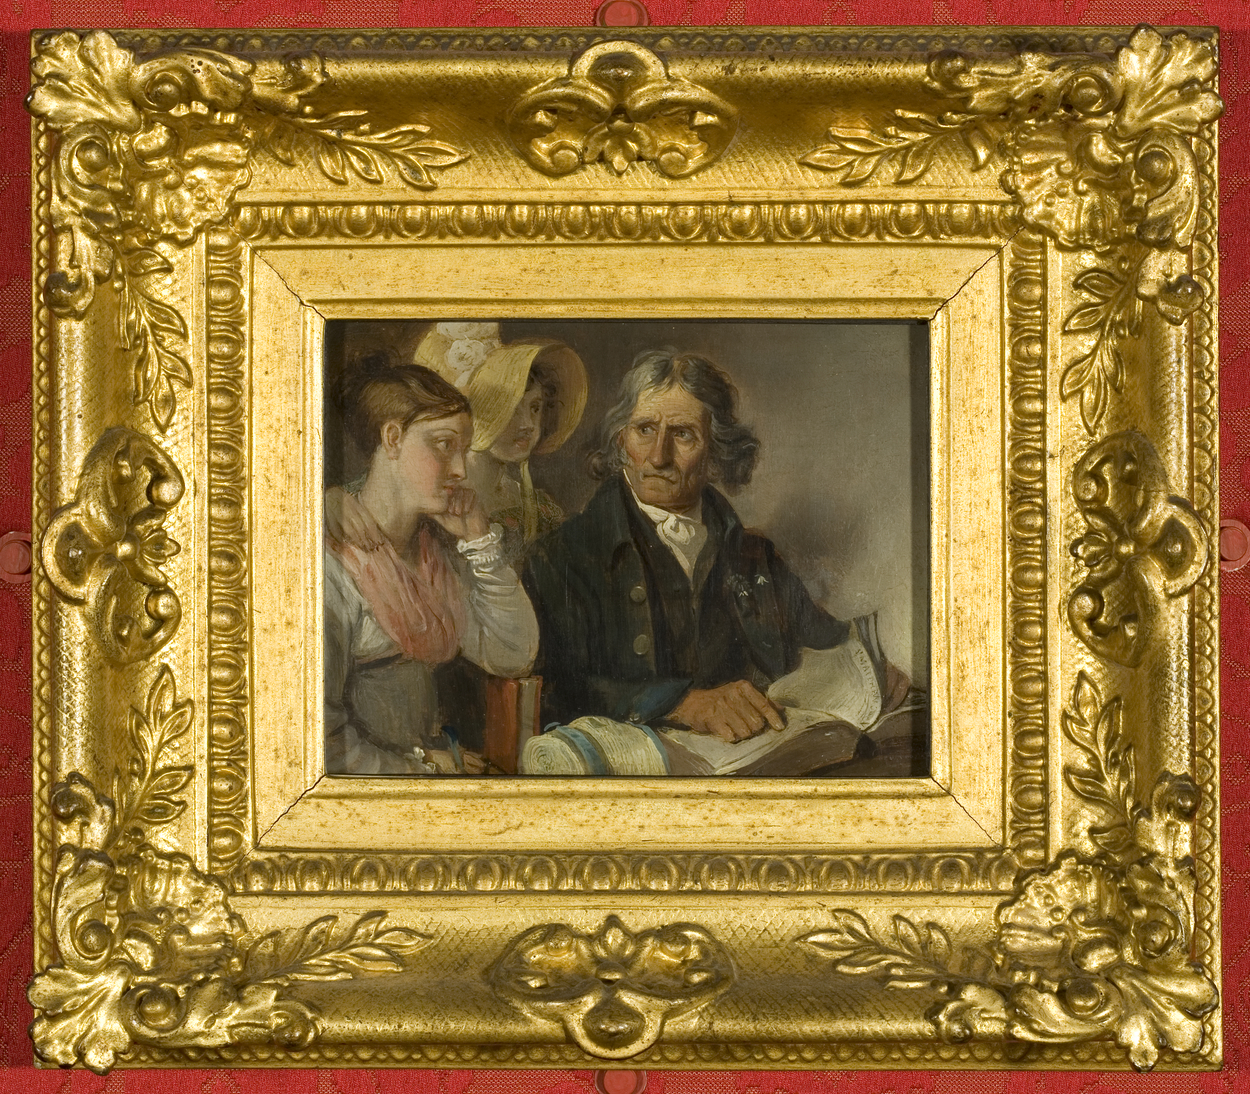 Painting of man reading to woman